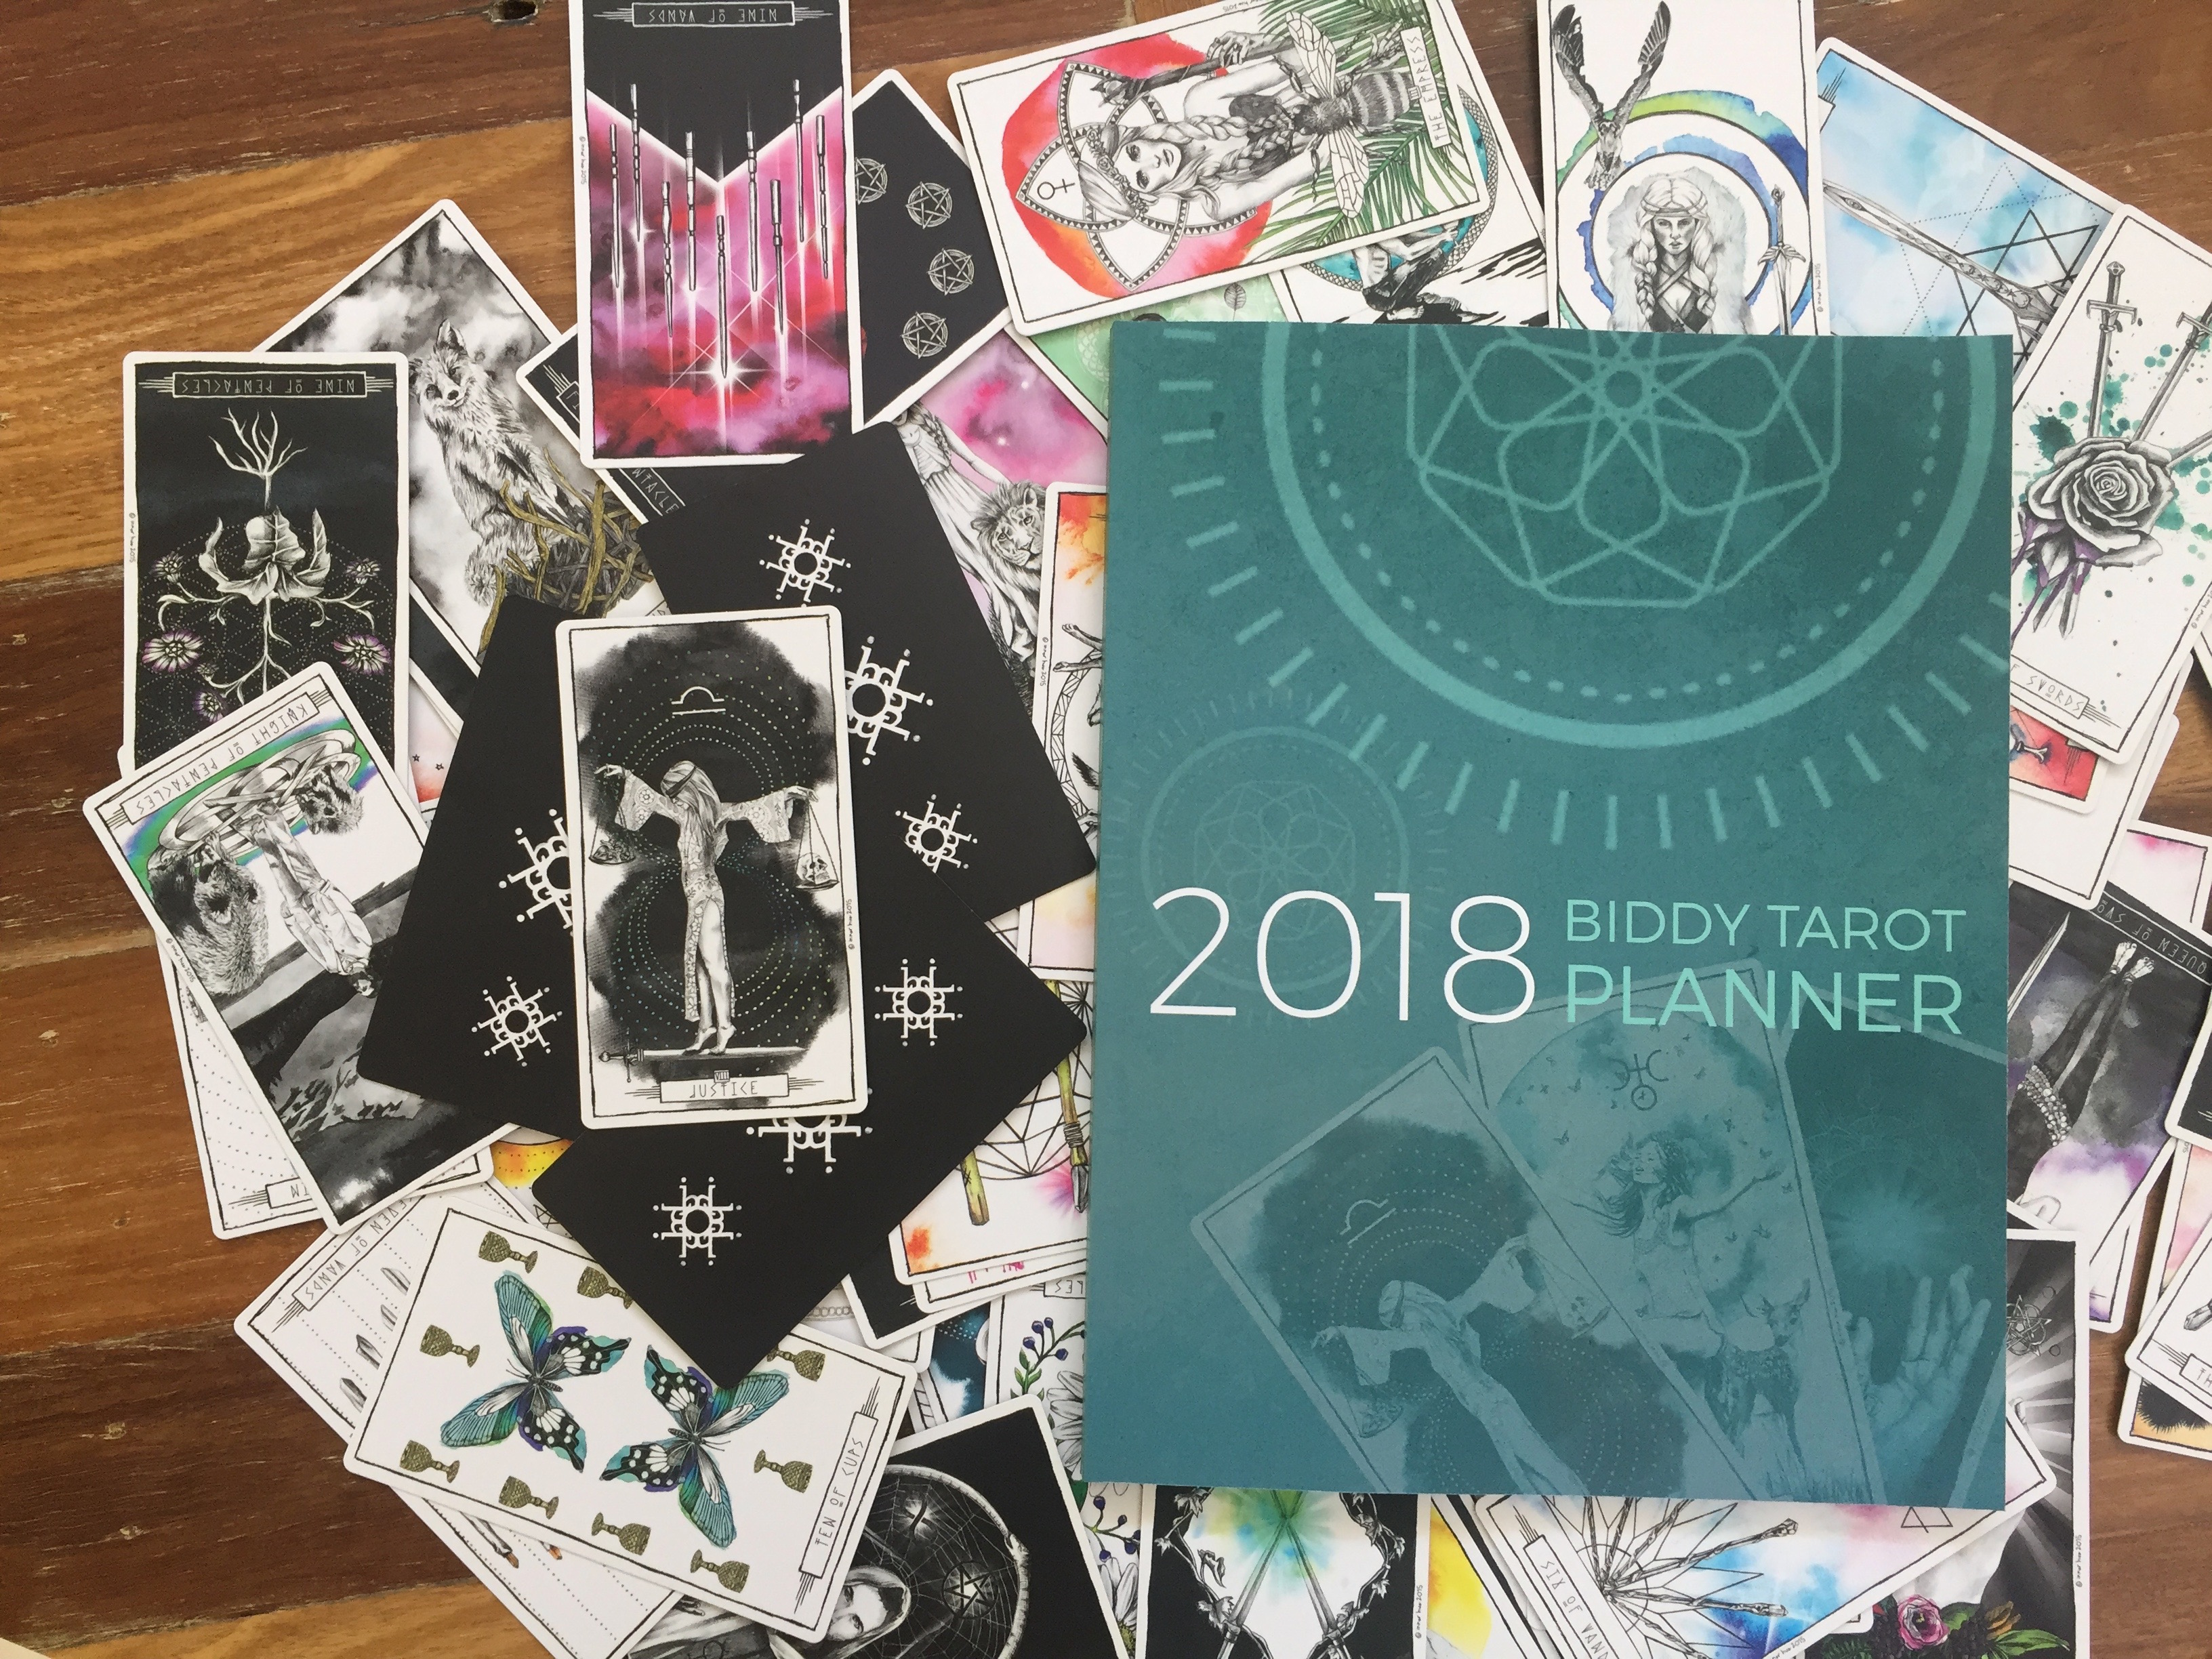 This tarot planner will make sure your 2018 is headed in the right direction